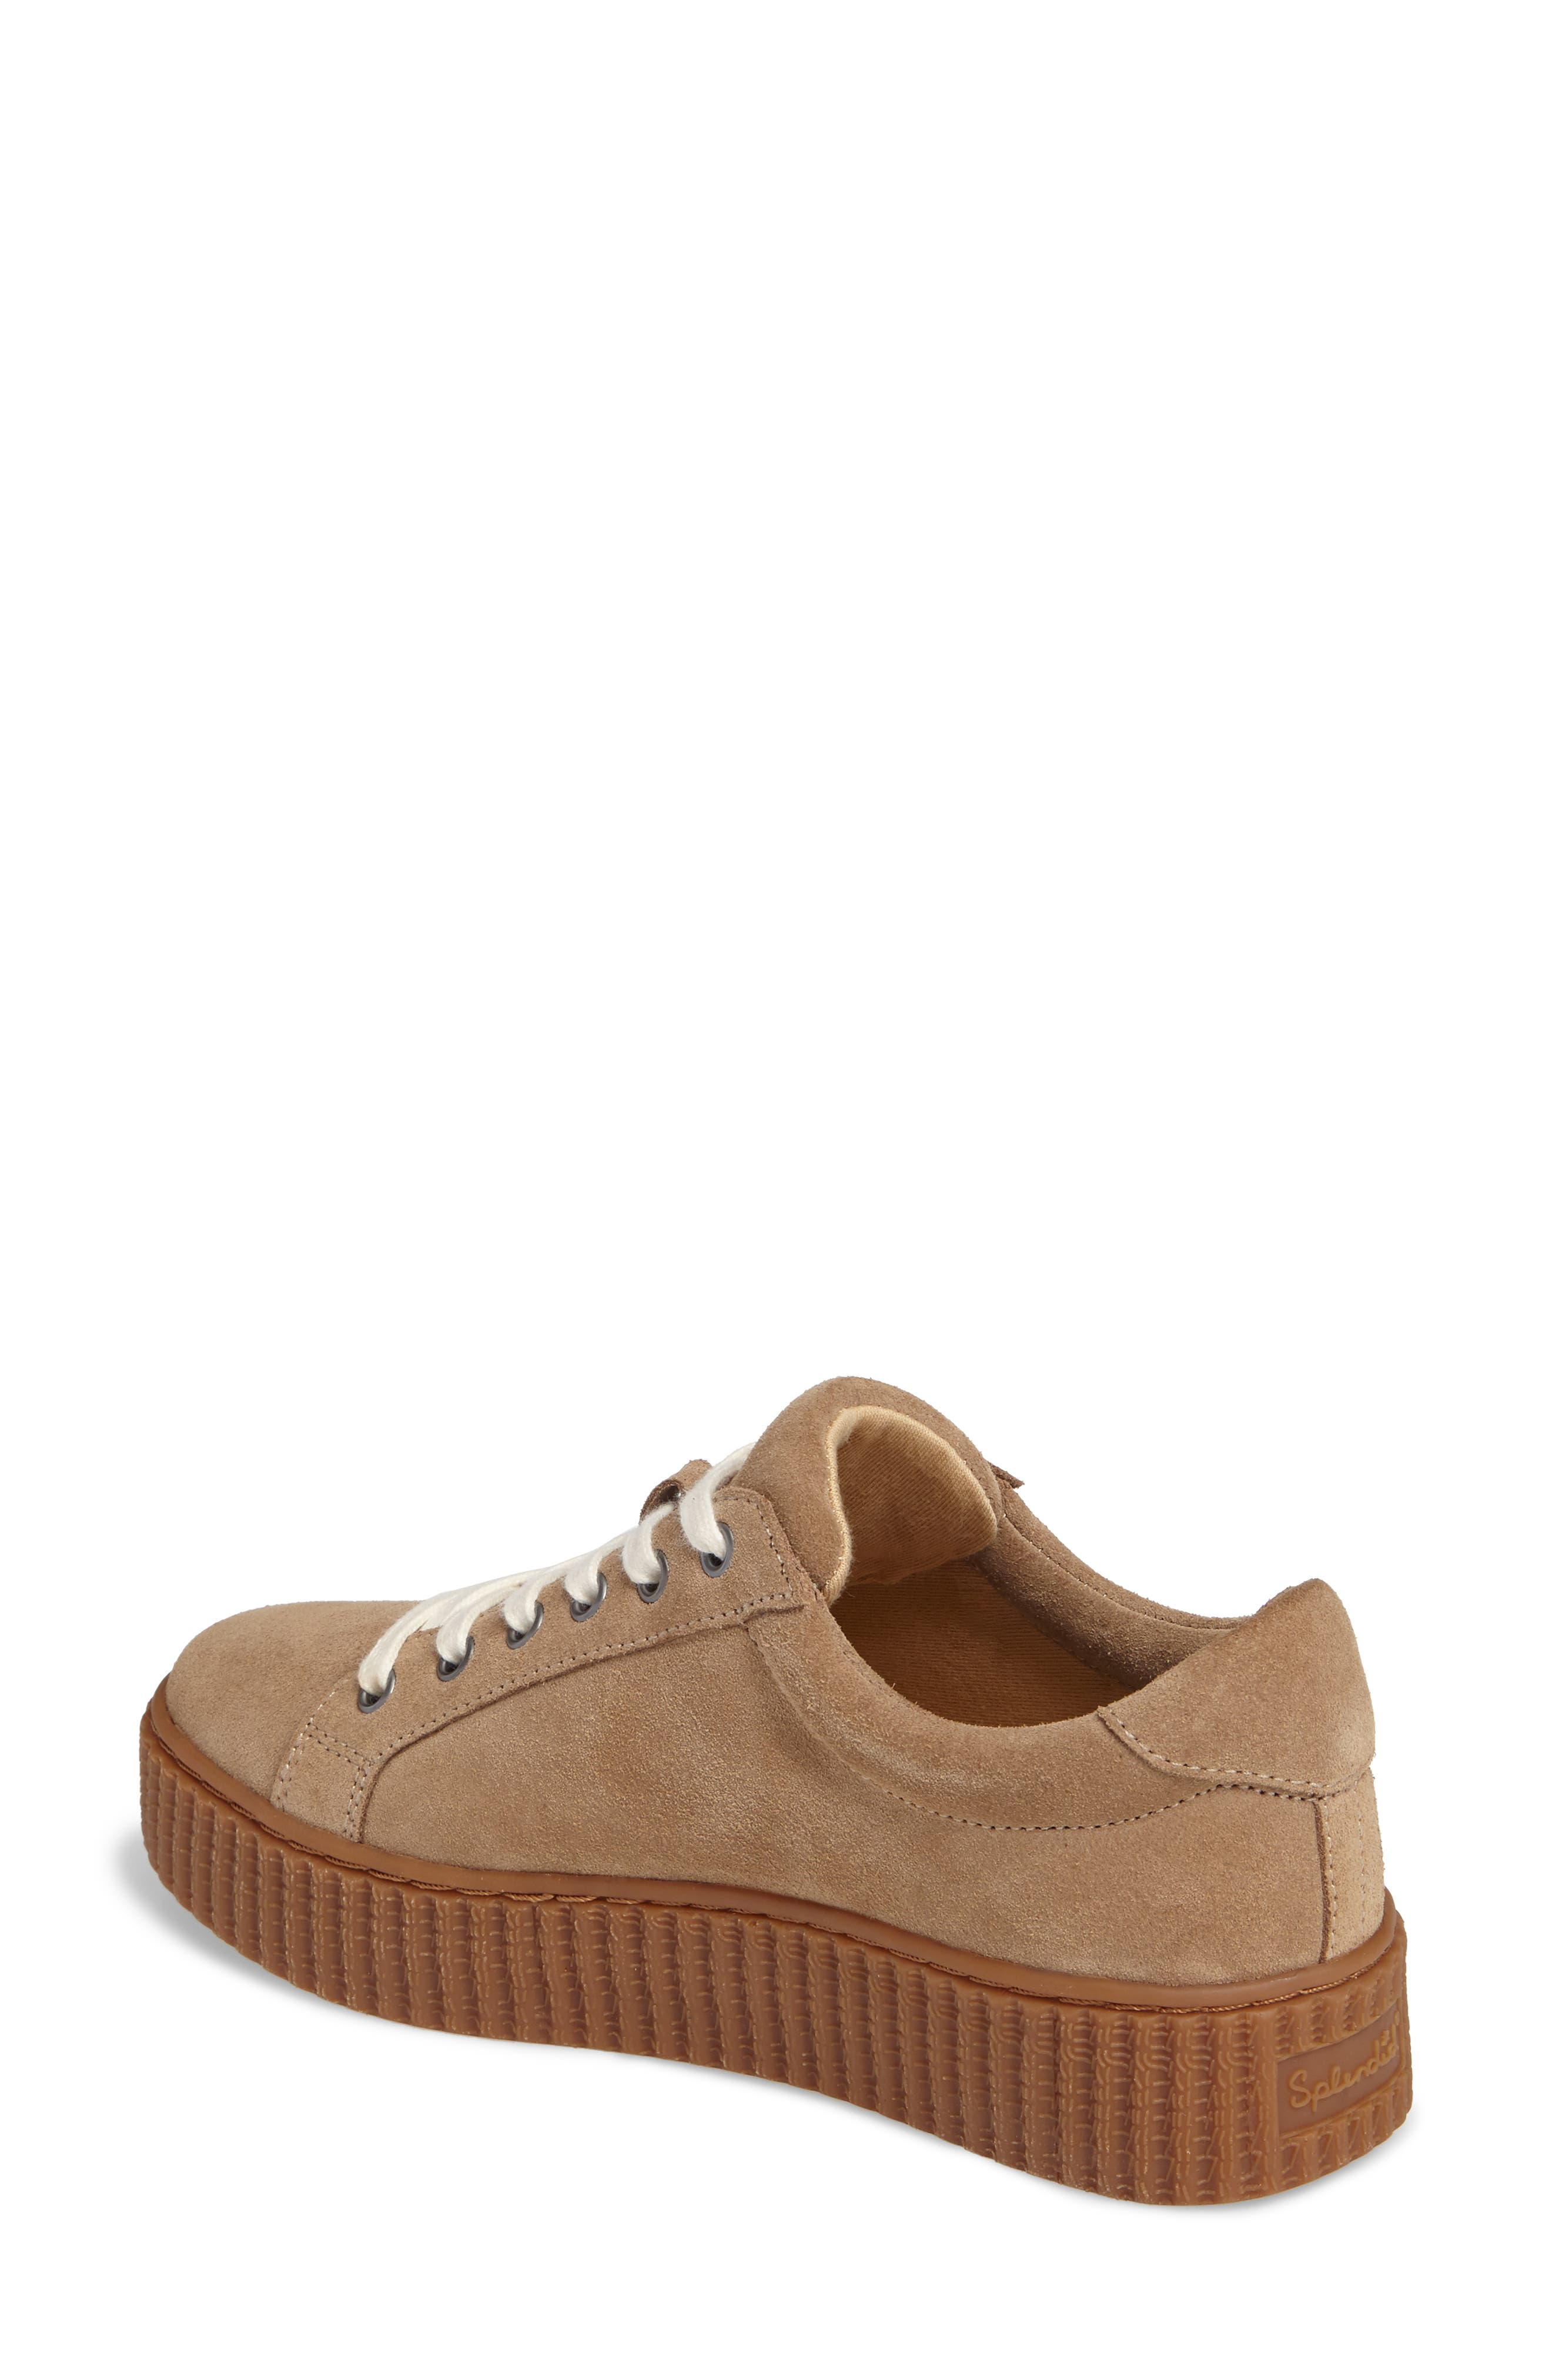 Ruth Platform Sneaker,                             Alternate thumbnail 2, color,                             Light Taupe Suede